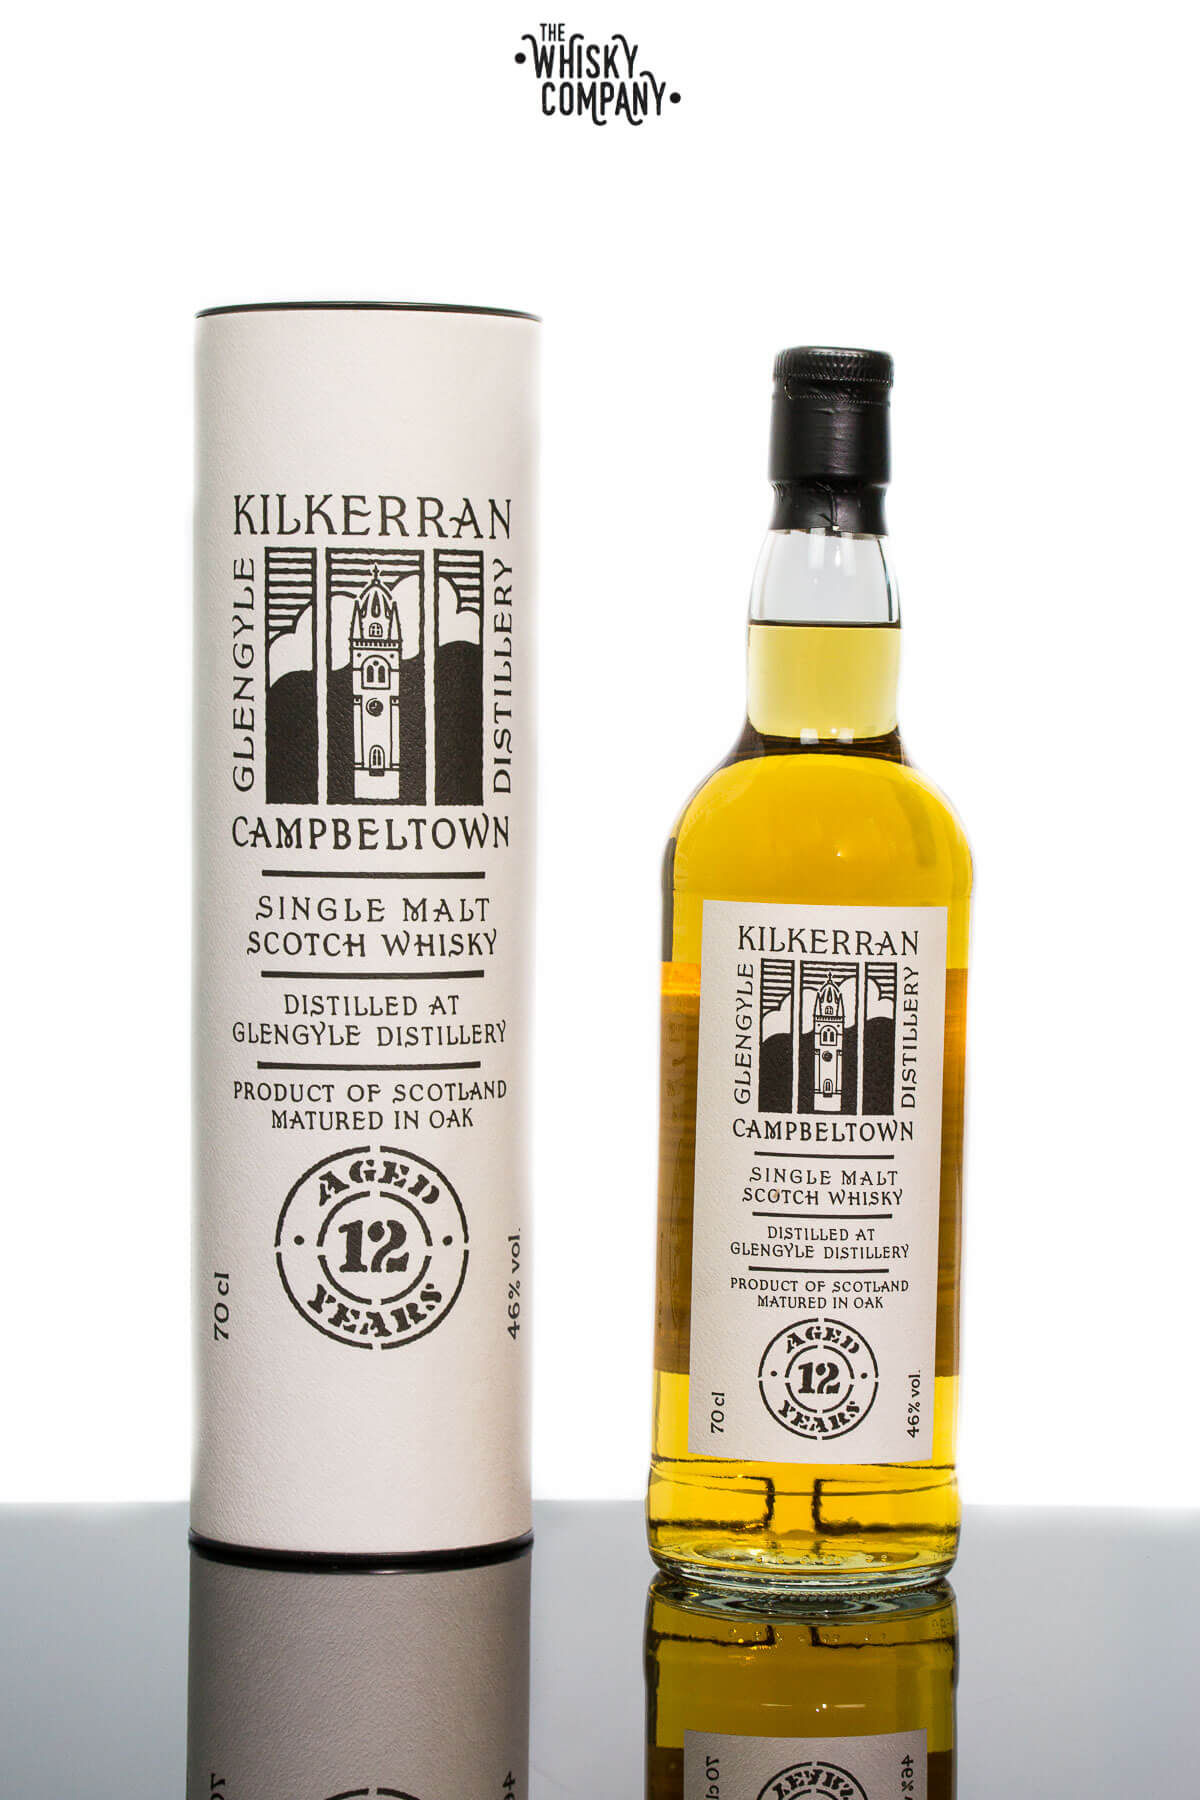 Kilkerran Aged 12 Years Campbeltown Single Malt Scotch Whisky